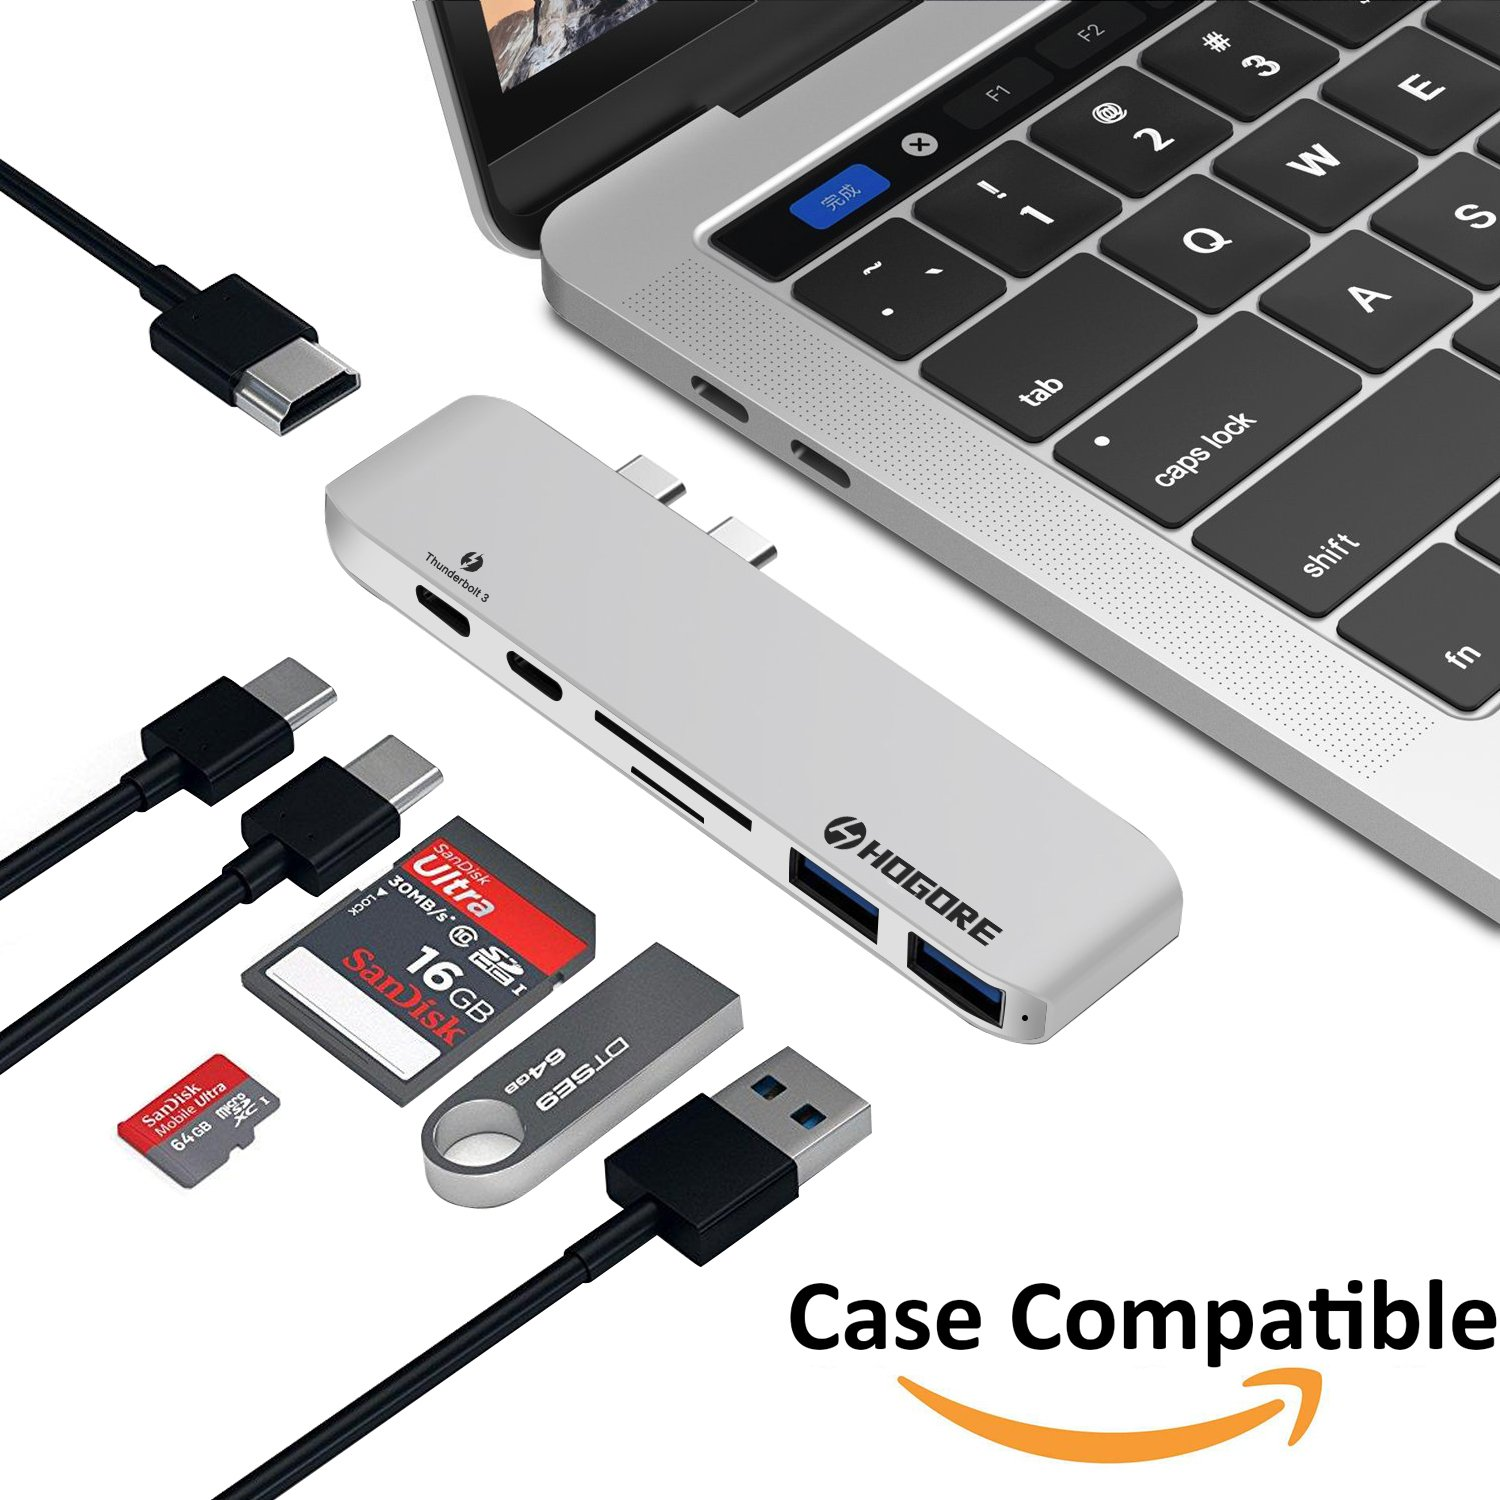 """MacBook Pro Dock, HOGORE Thunderbolt 3 Adapter USB C Hub for MacBook Pro 2017 2016 13"""" 15"""" with 4K HDMI, 40Gbps TB3, 100W Pass-through Charging, USB-C, SD/MicroSD Reader, 2 USB 3.0 Ports -Silver"""